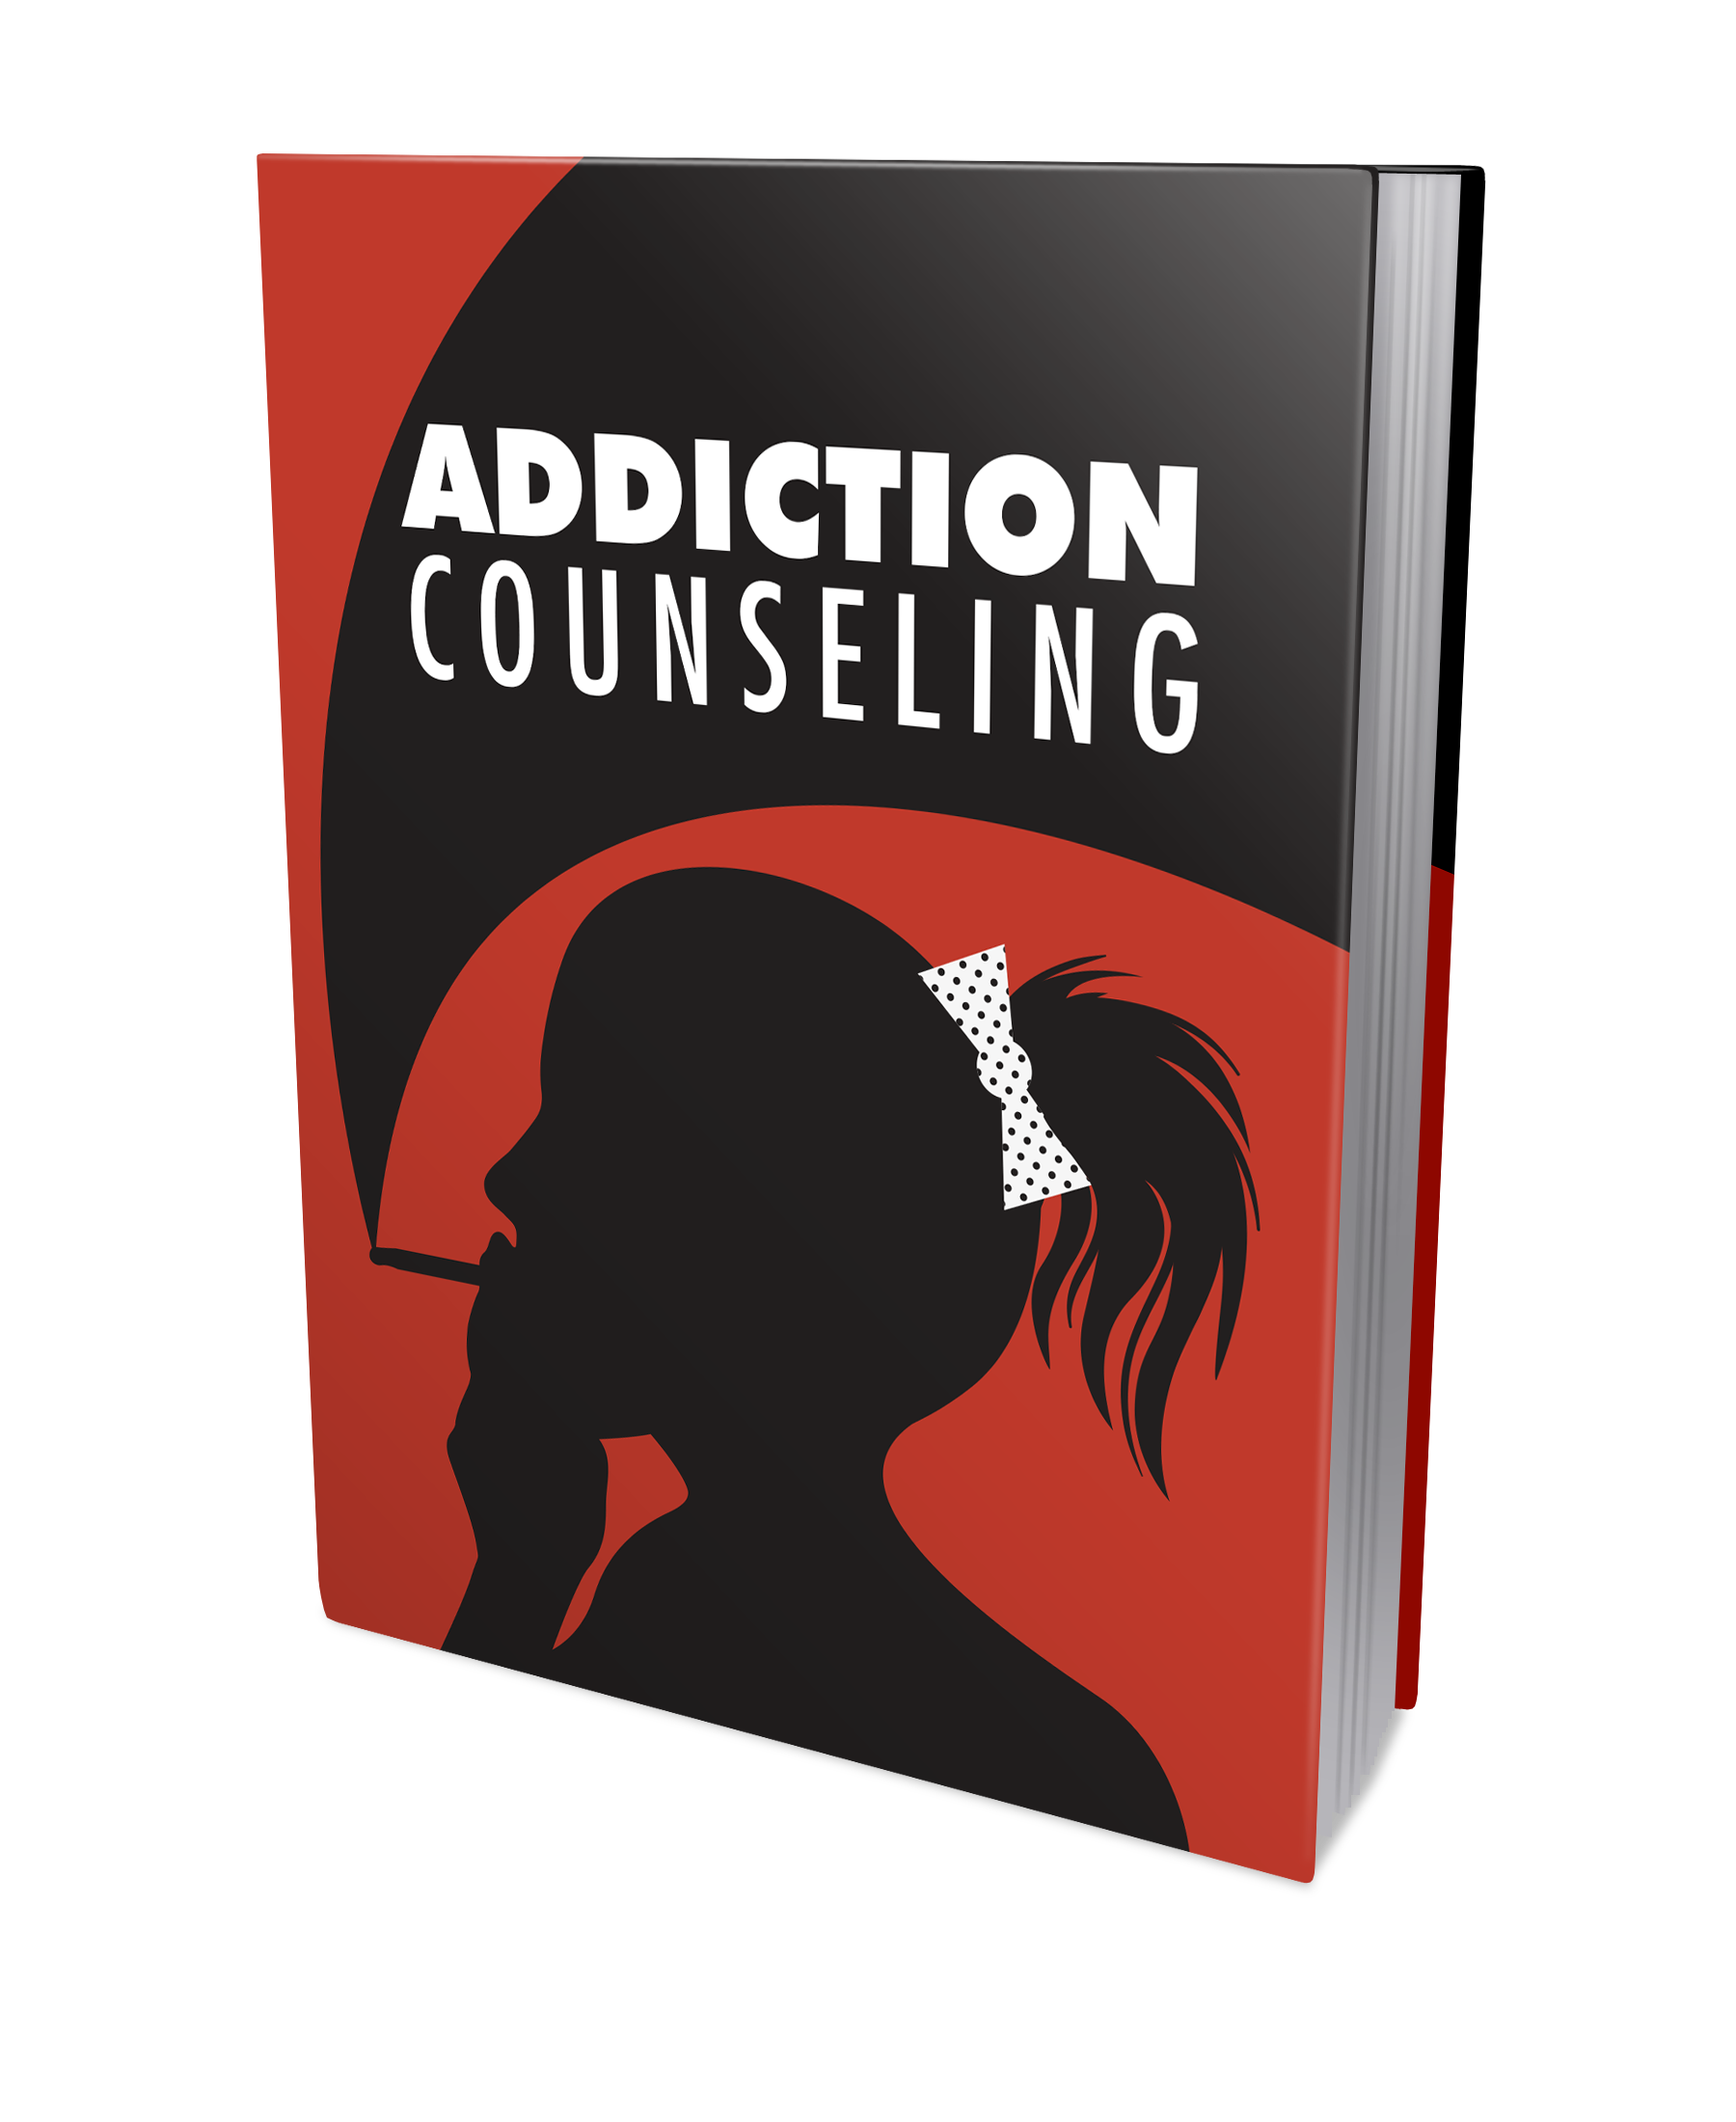 Addiction-Counseling-eBook